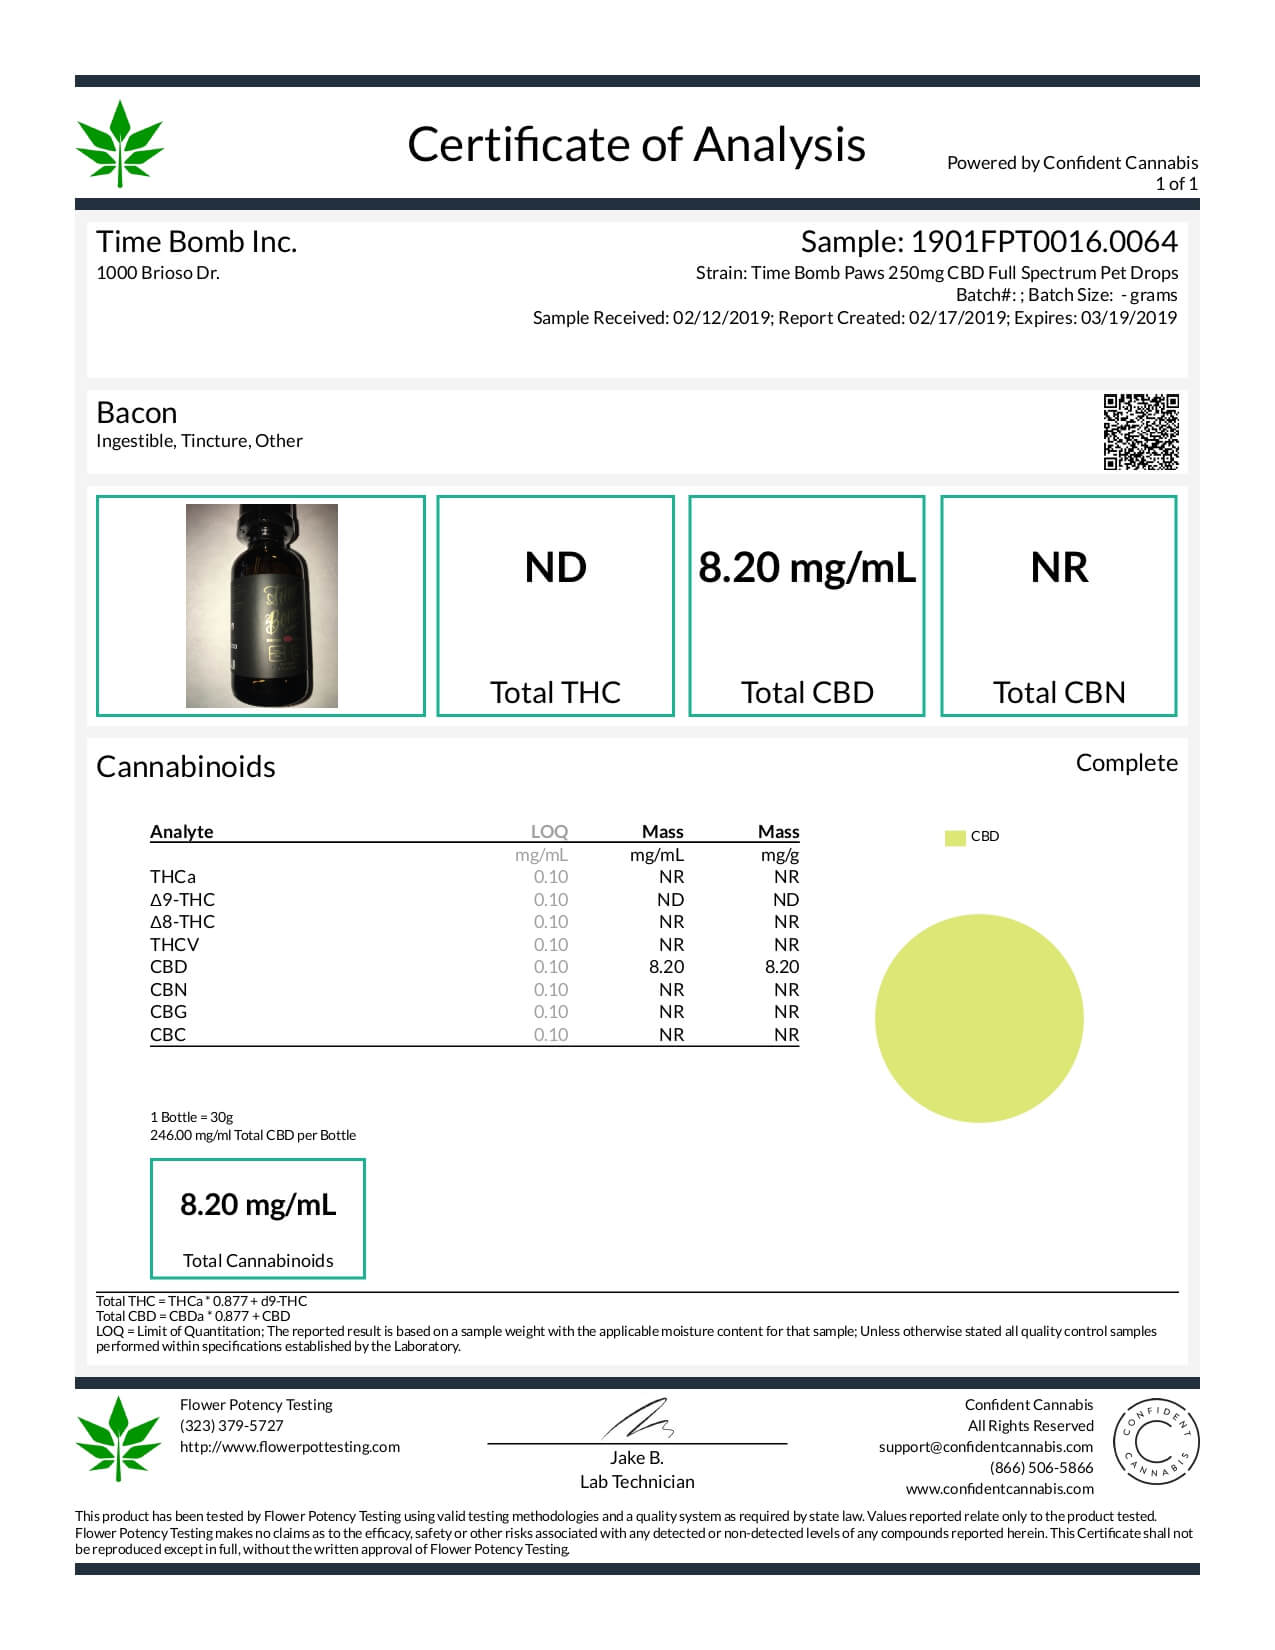 Time Bomb Extracts CBD Pet Tincture Bacon Lab Report